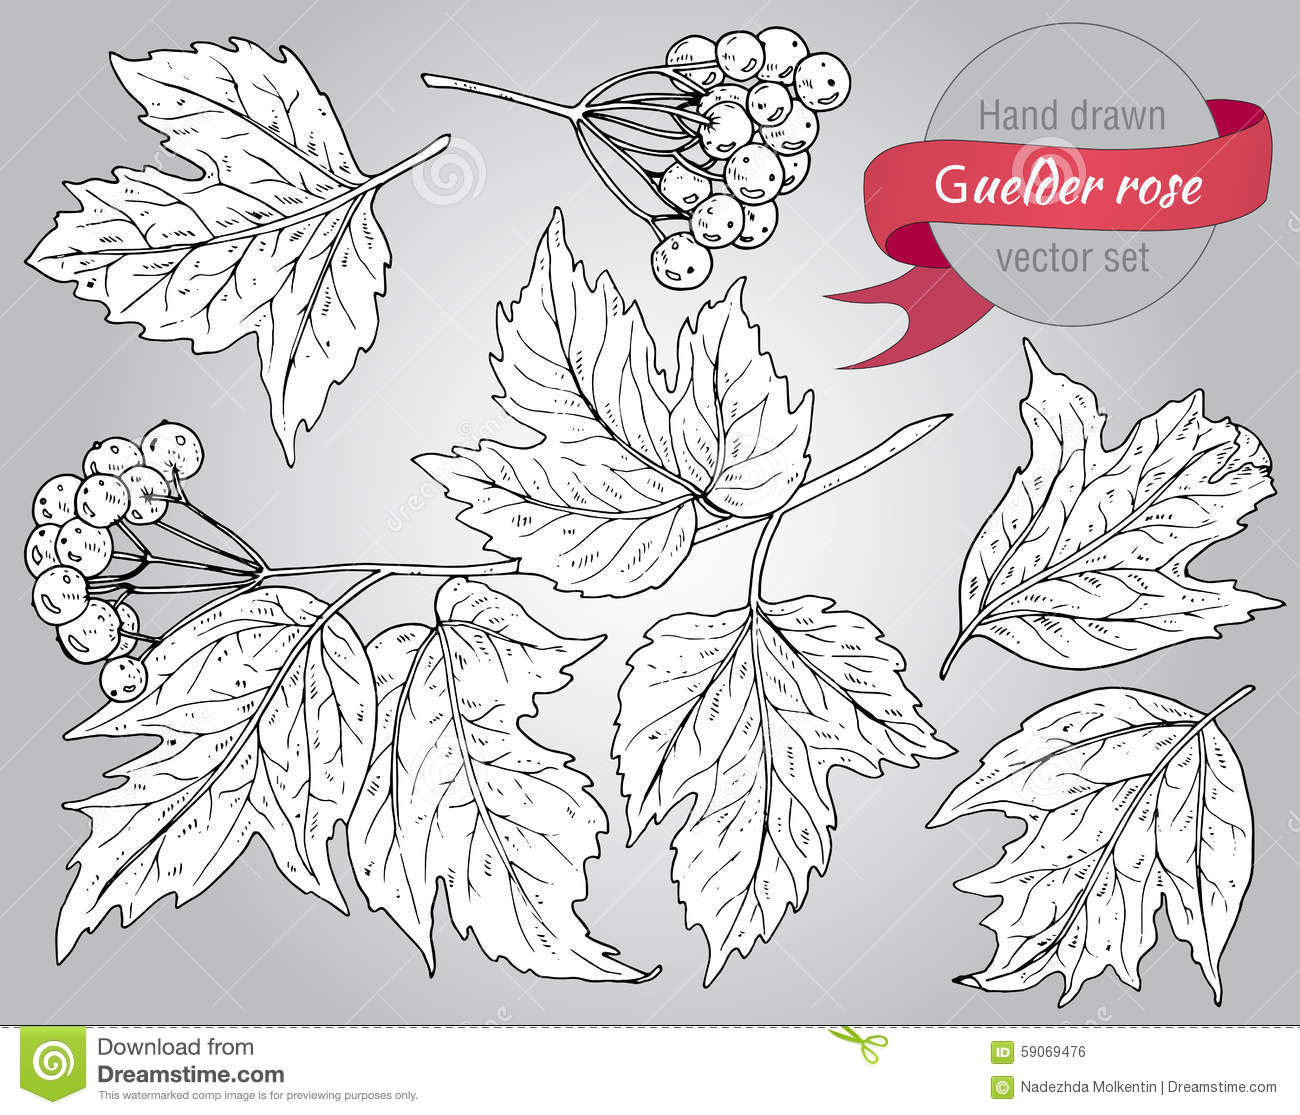 Clip Art Collection Of Hand Drawn Guelder Rose Plant Stock Vector.